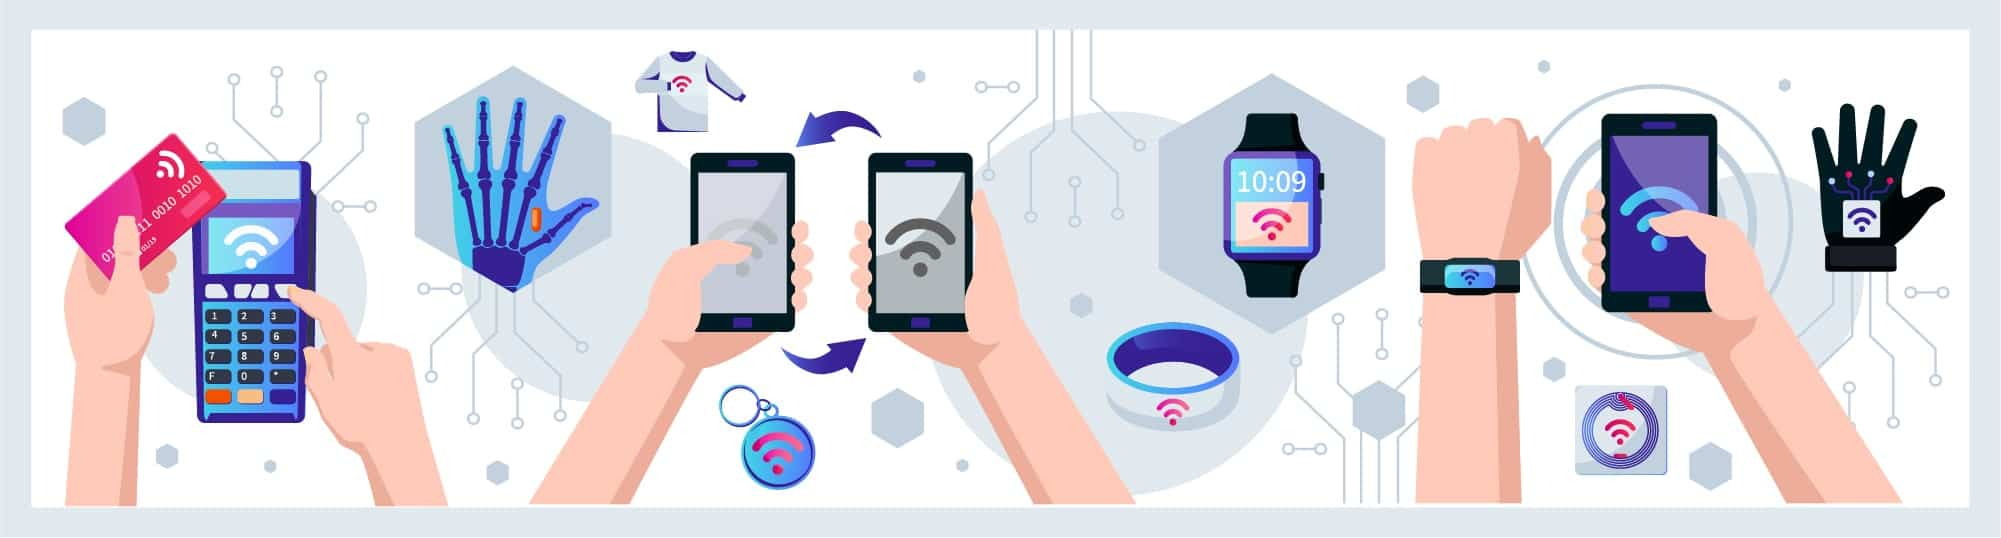 Empower contactless payment